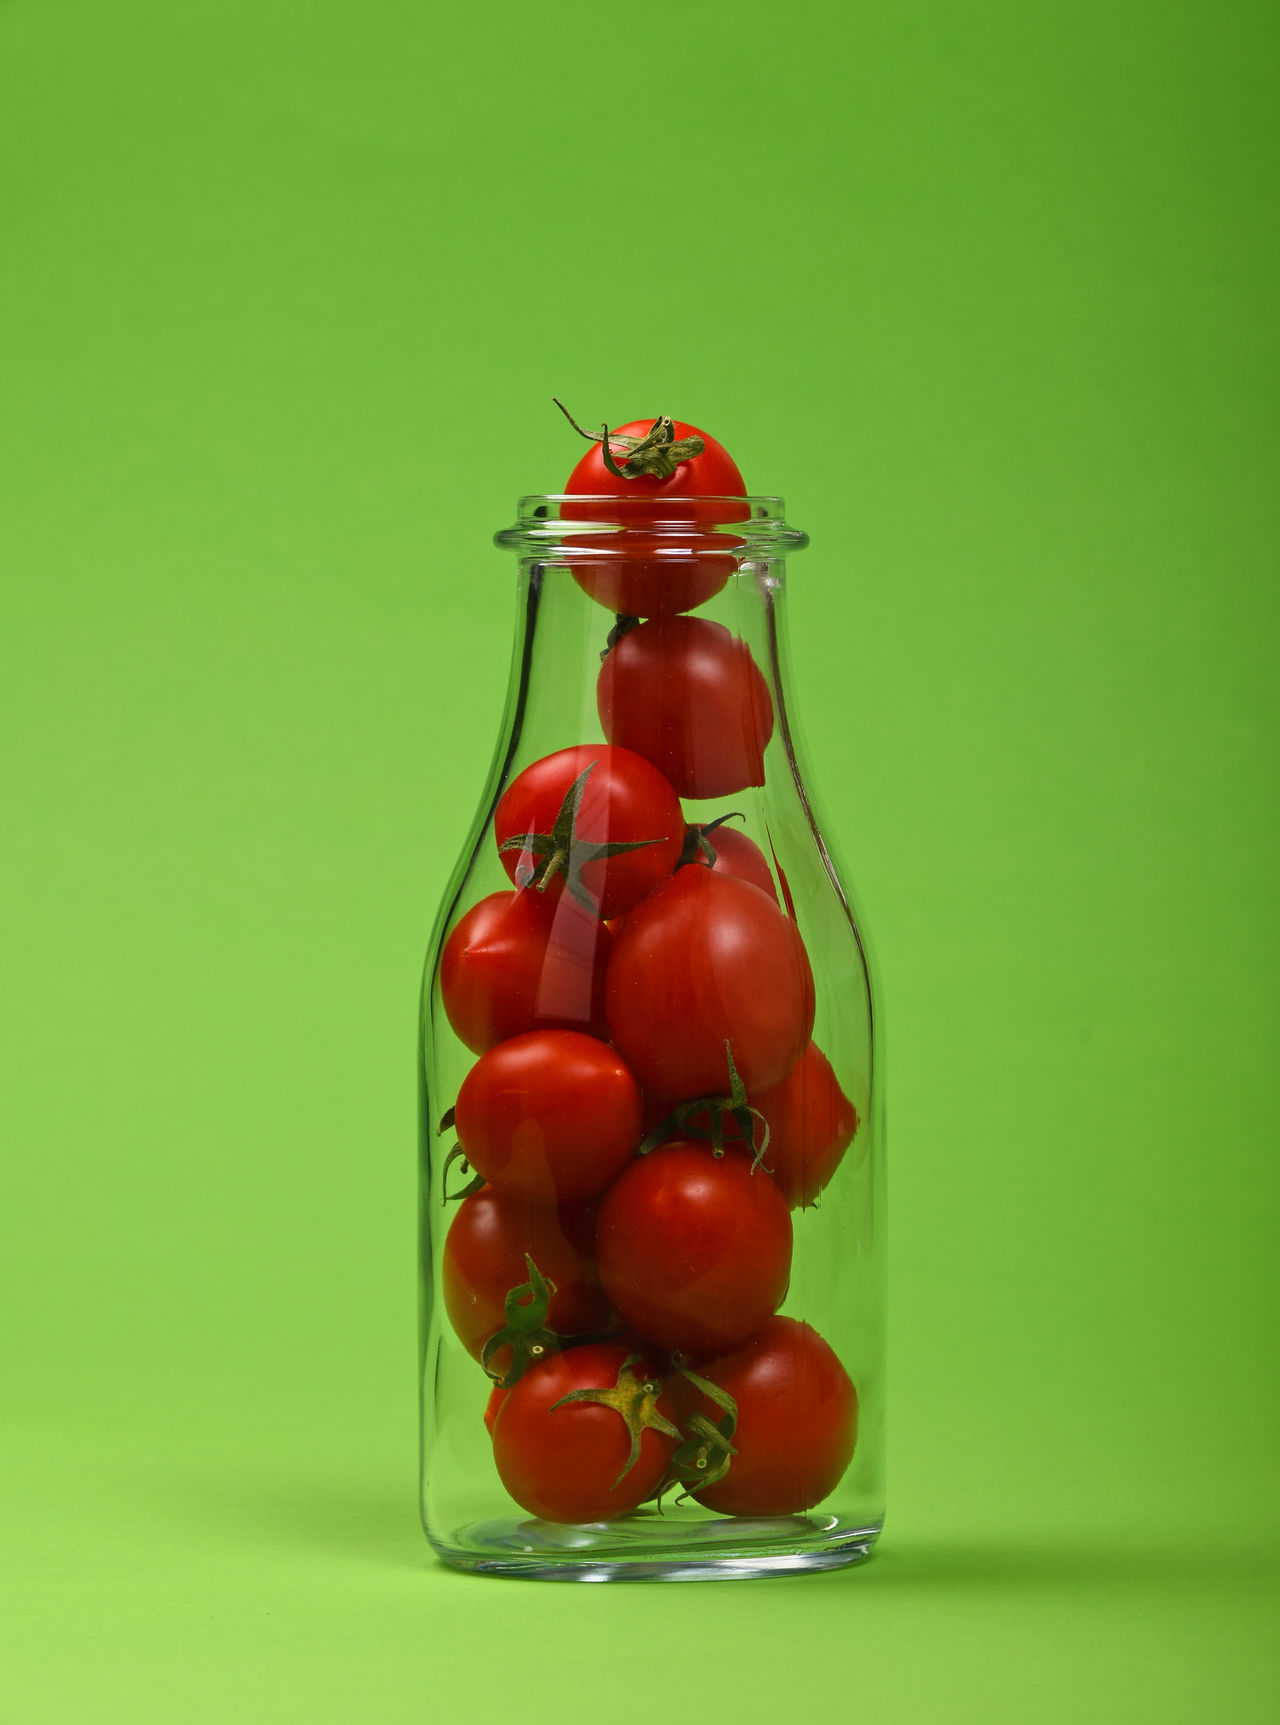 Small red cherry tomatoes in glass bottle over green background Advertising Bottle Cherry Tomato Cherry Tomatoes Colored Background Concept Copy Space Food Freshness Glass - Material Glass Bottle Green Background Green Color Healthy Healthy Eating Juice Ketchup Natural Nature Organic Red Studio Shot Tomato Vegetable Vegetarian Food